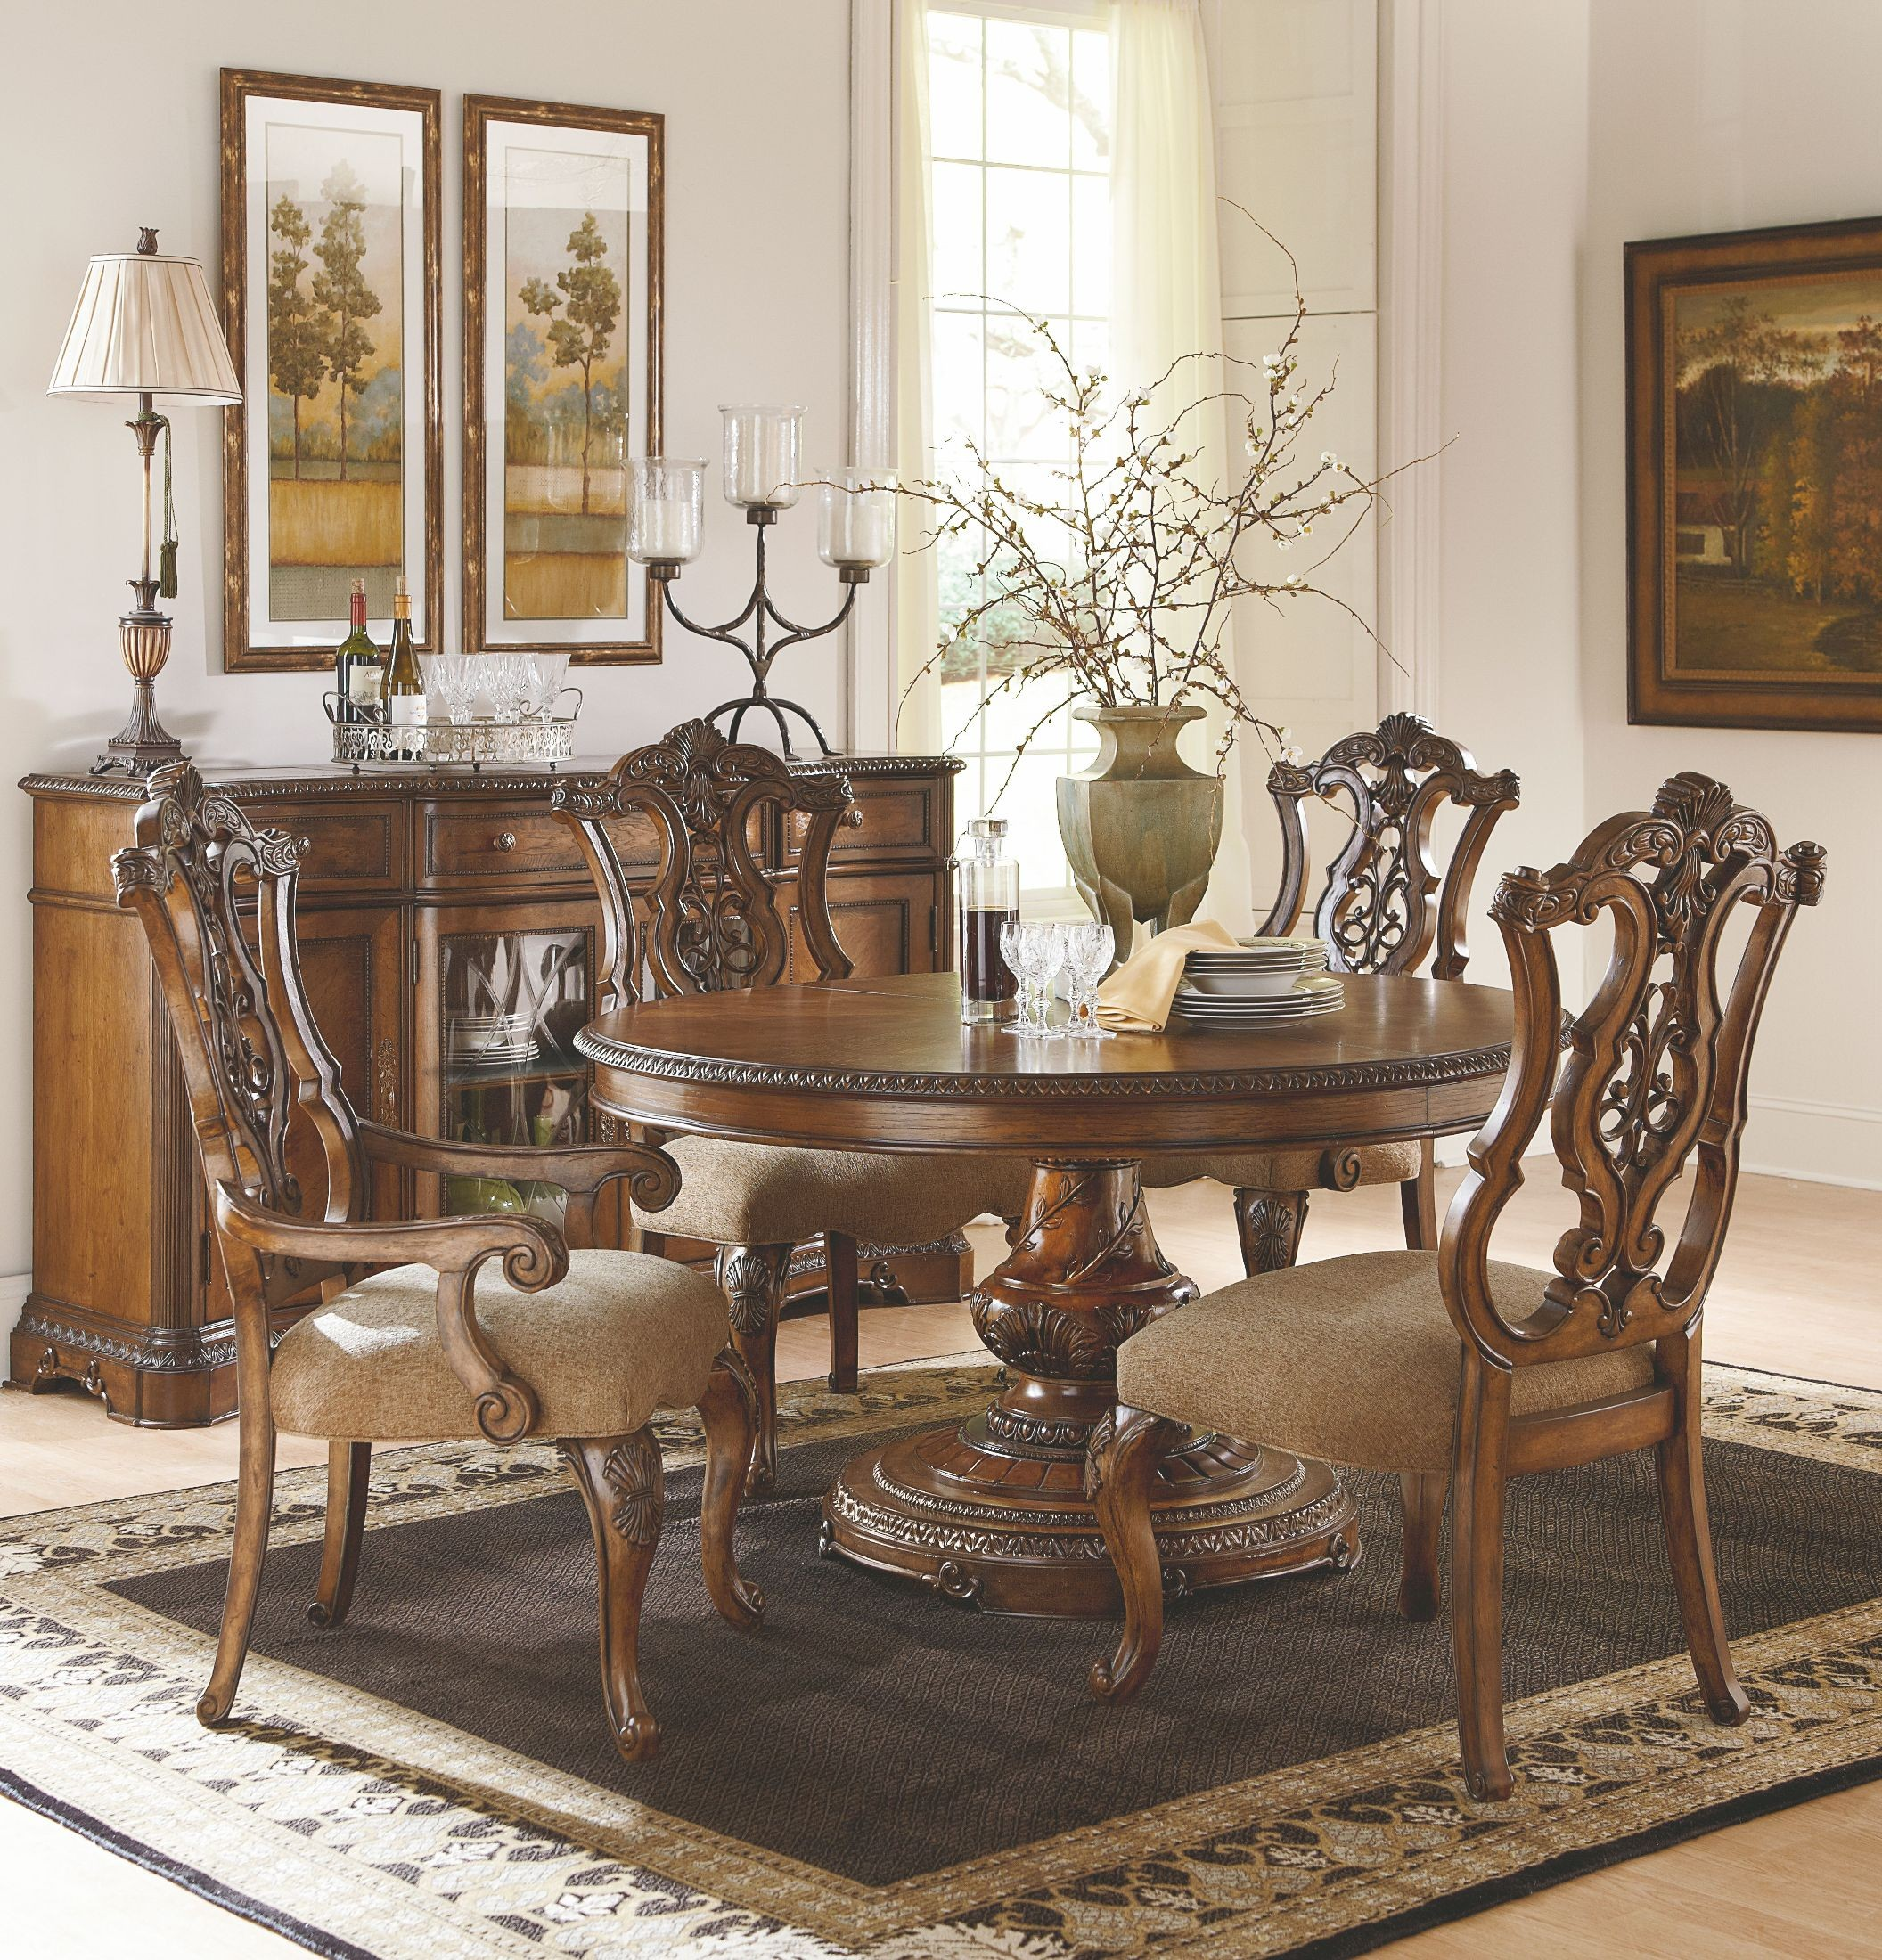 dining sets pemberleigh extendable round to oval dining room set